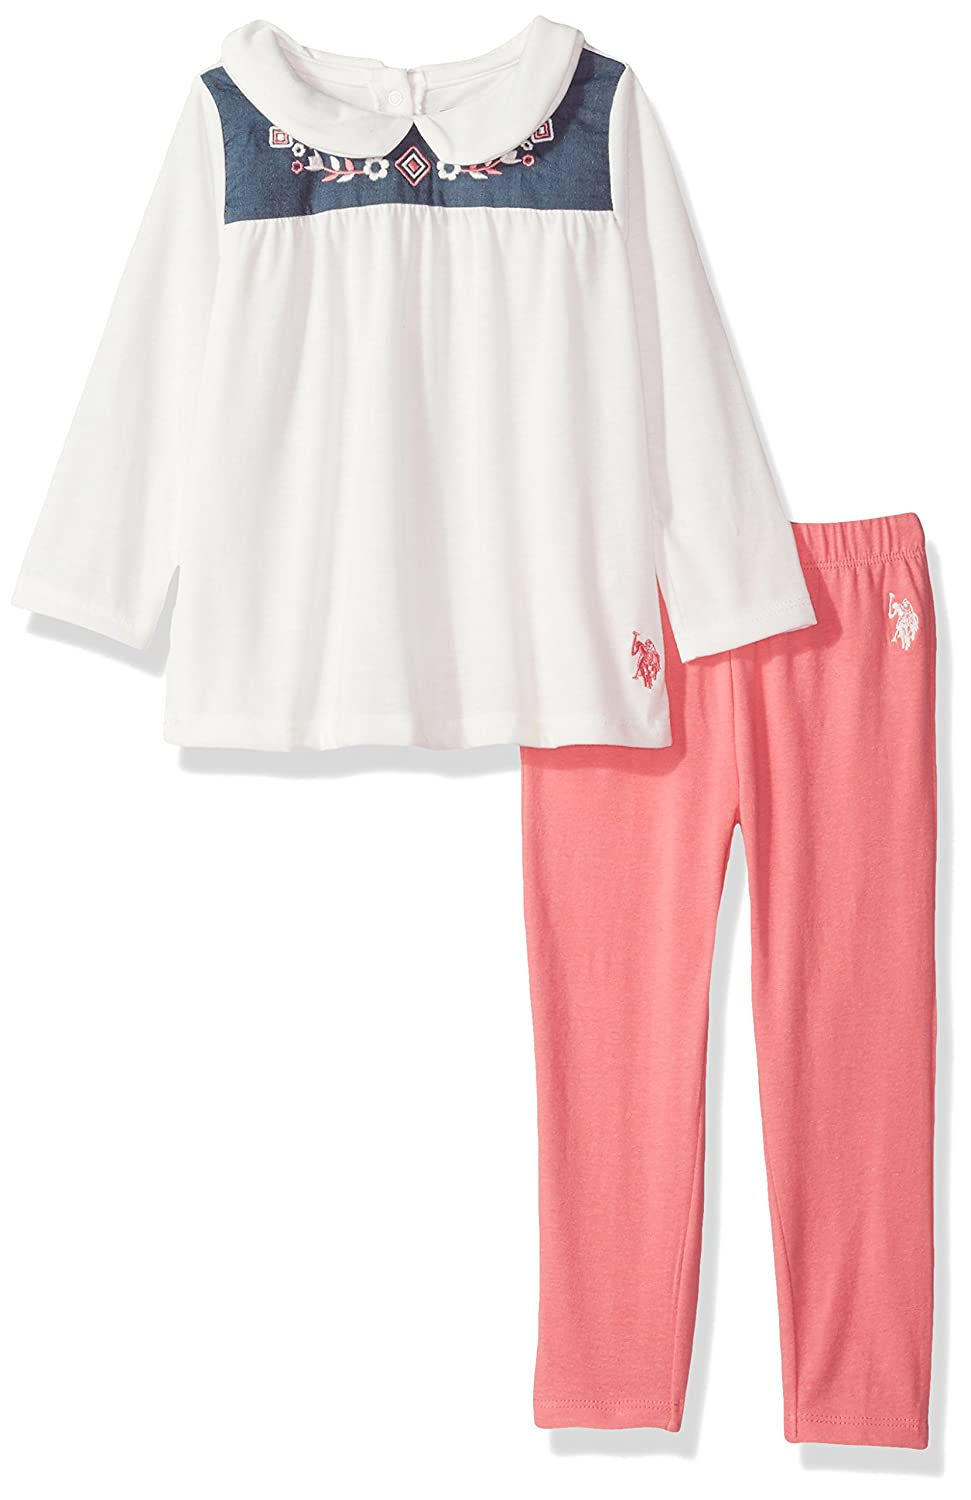 U.S. Polo Assn. Girls' Fashion Top and Legging Set, Red-3274